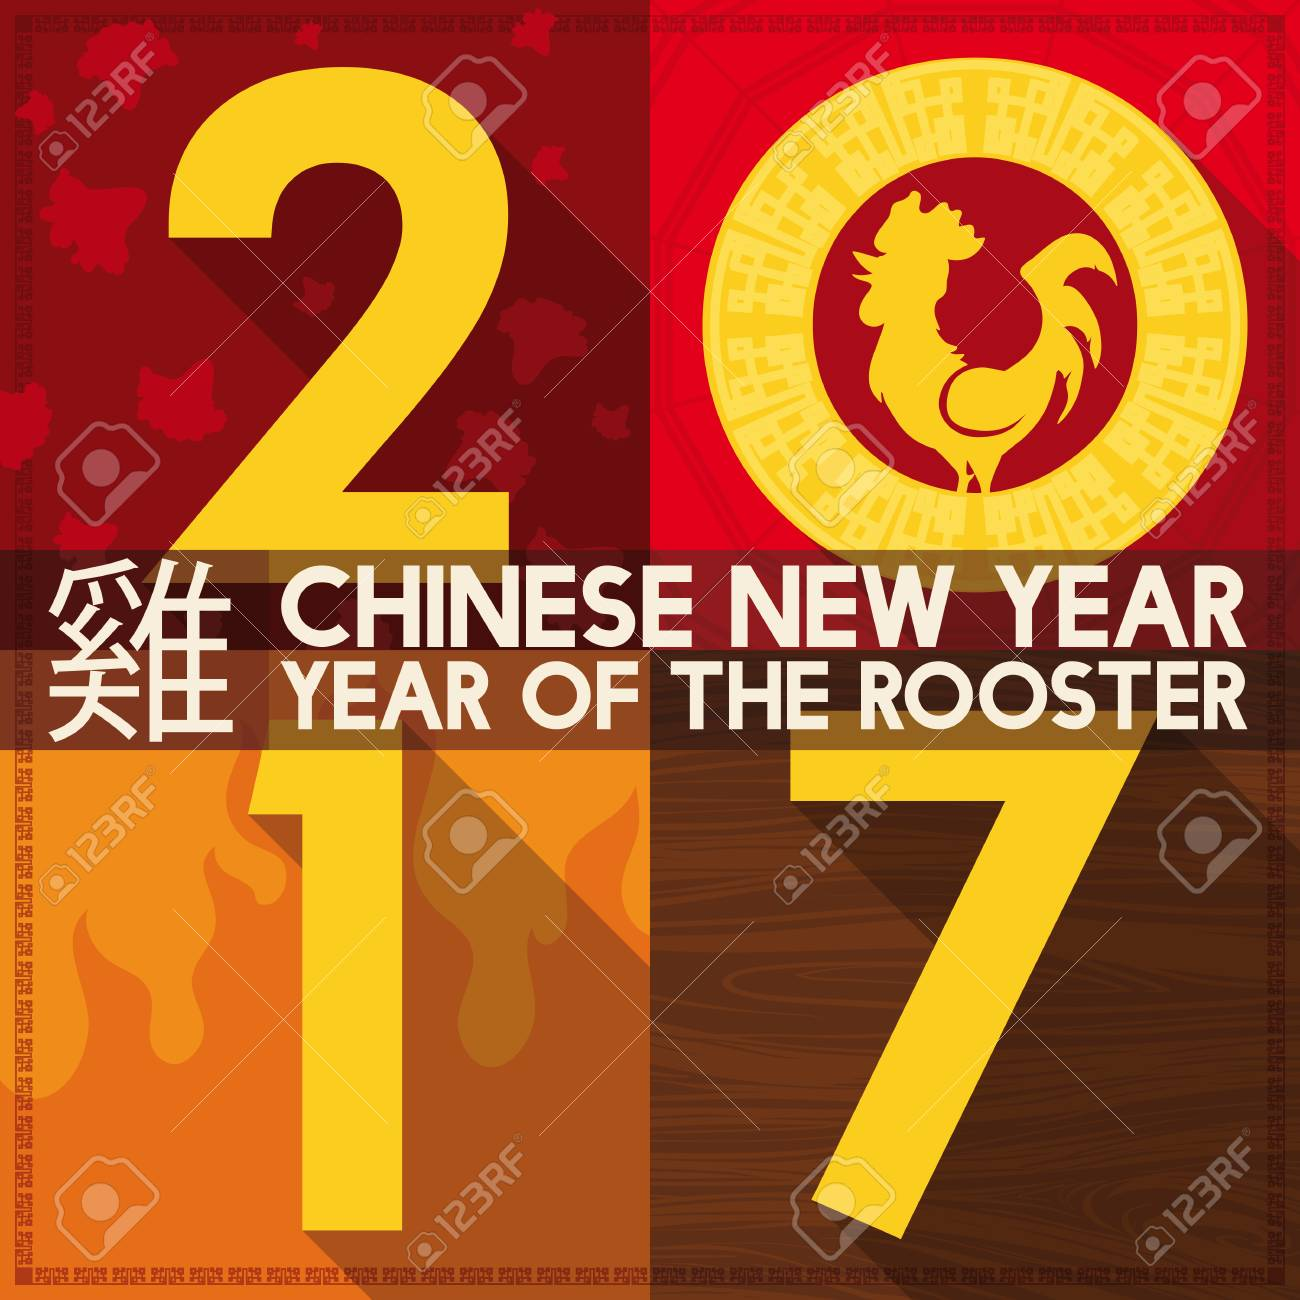 Poster In Flat Style For Chinese New Year Celebration With Reminder